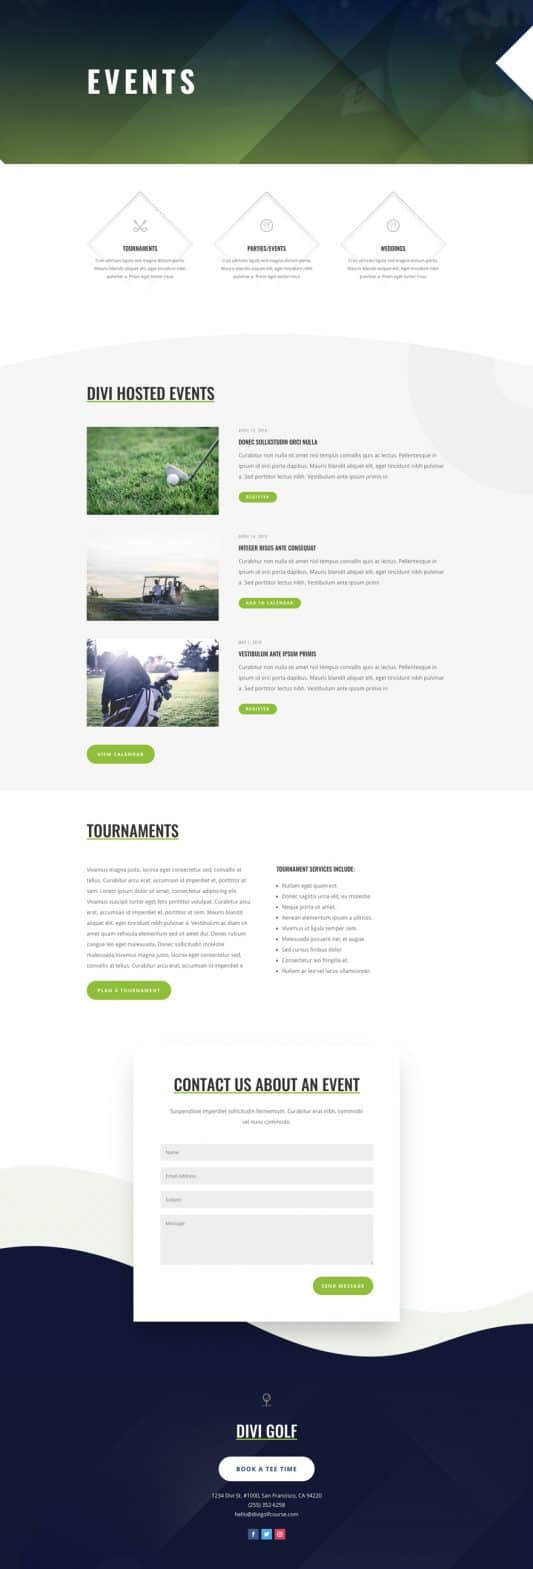 Golf Course Web Design 5